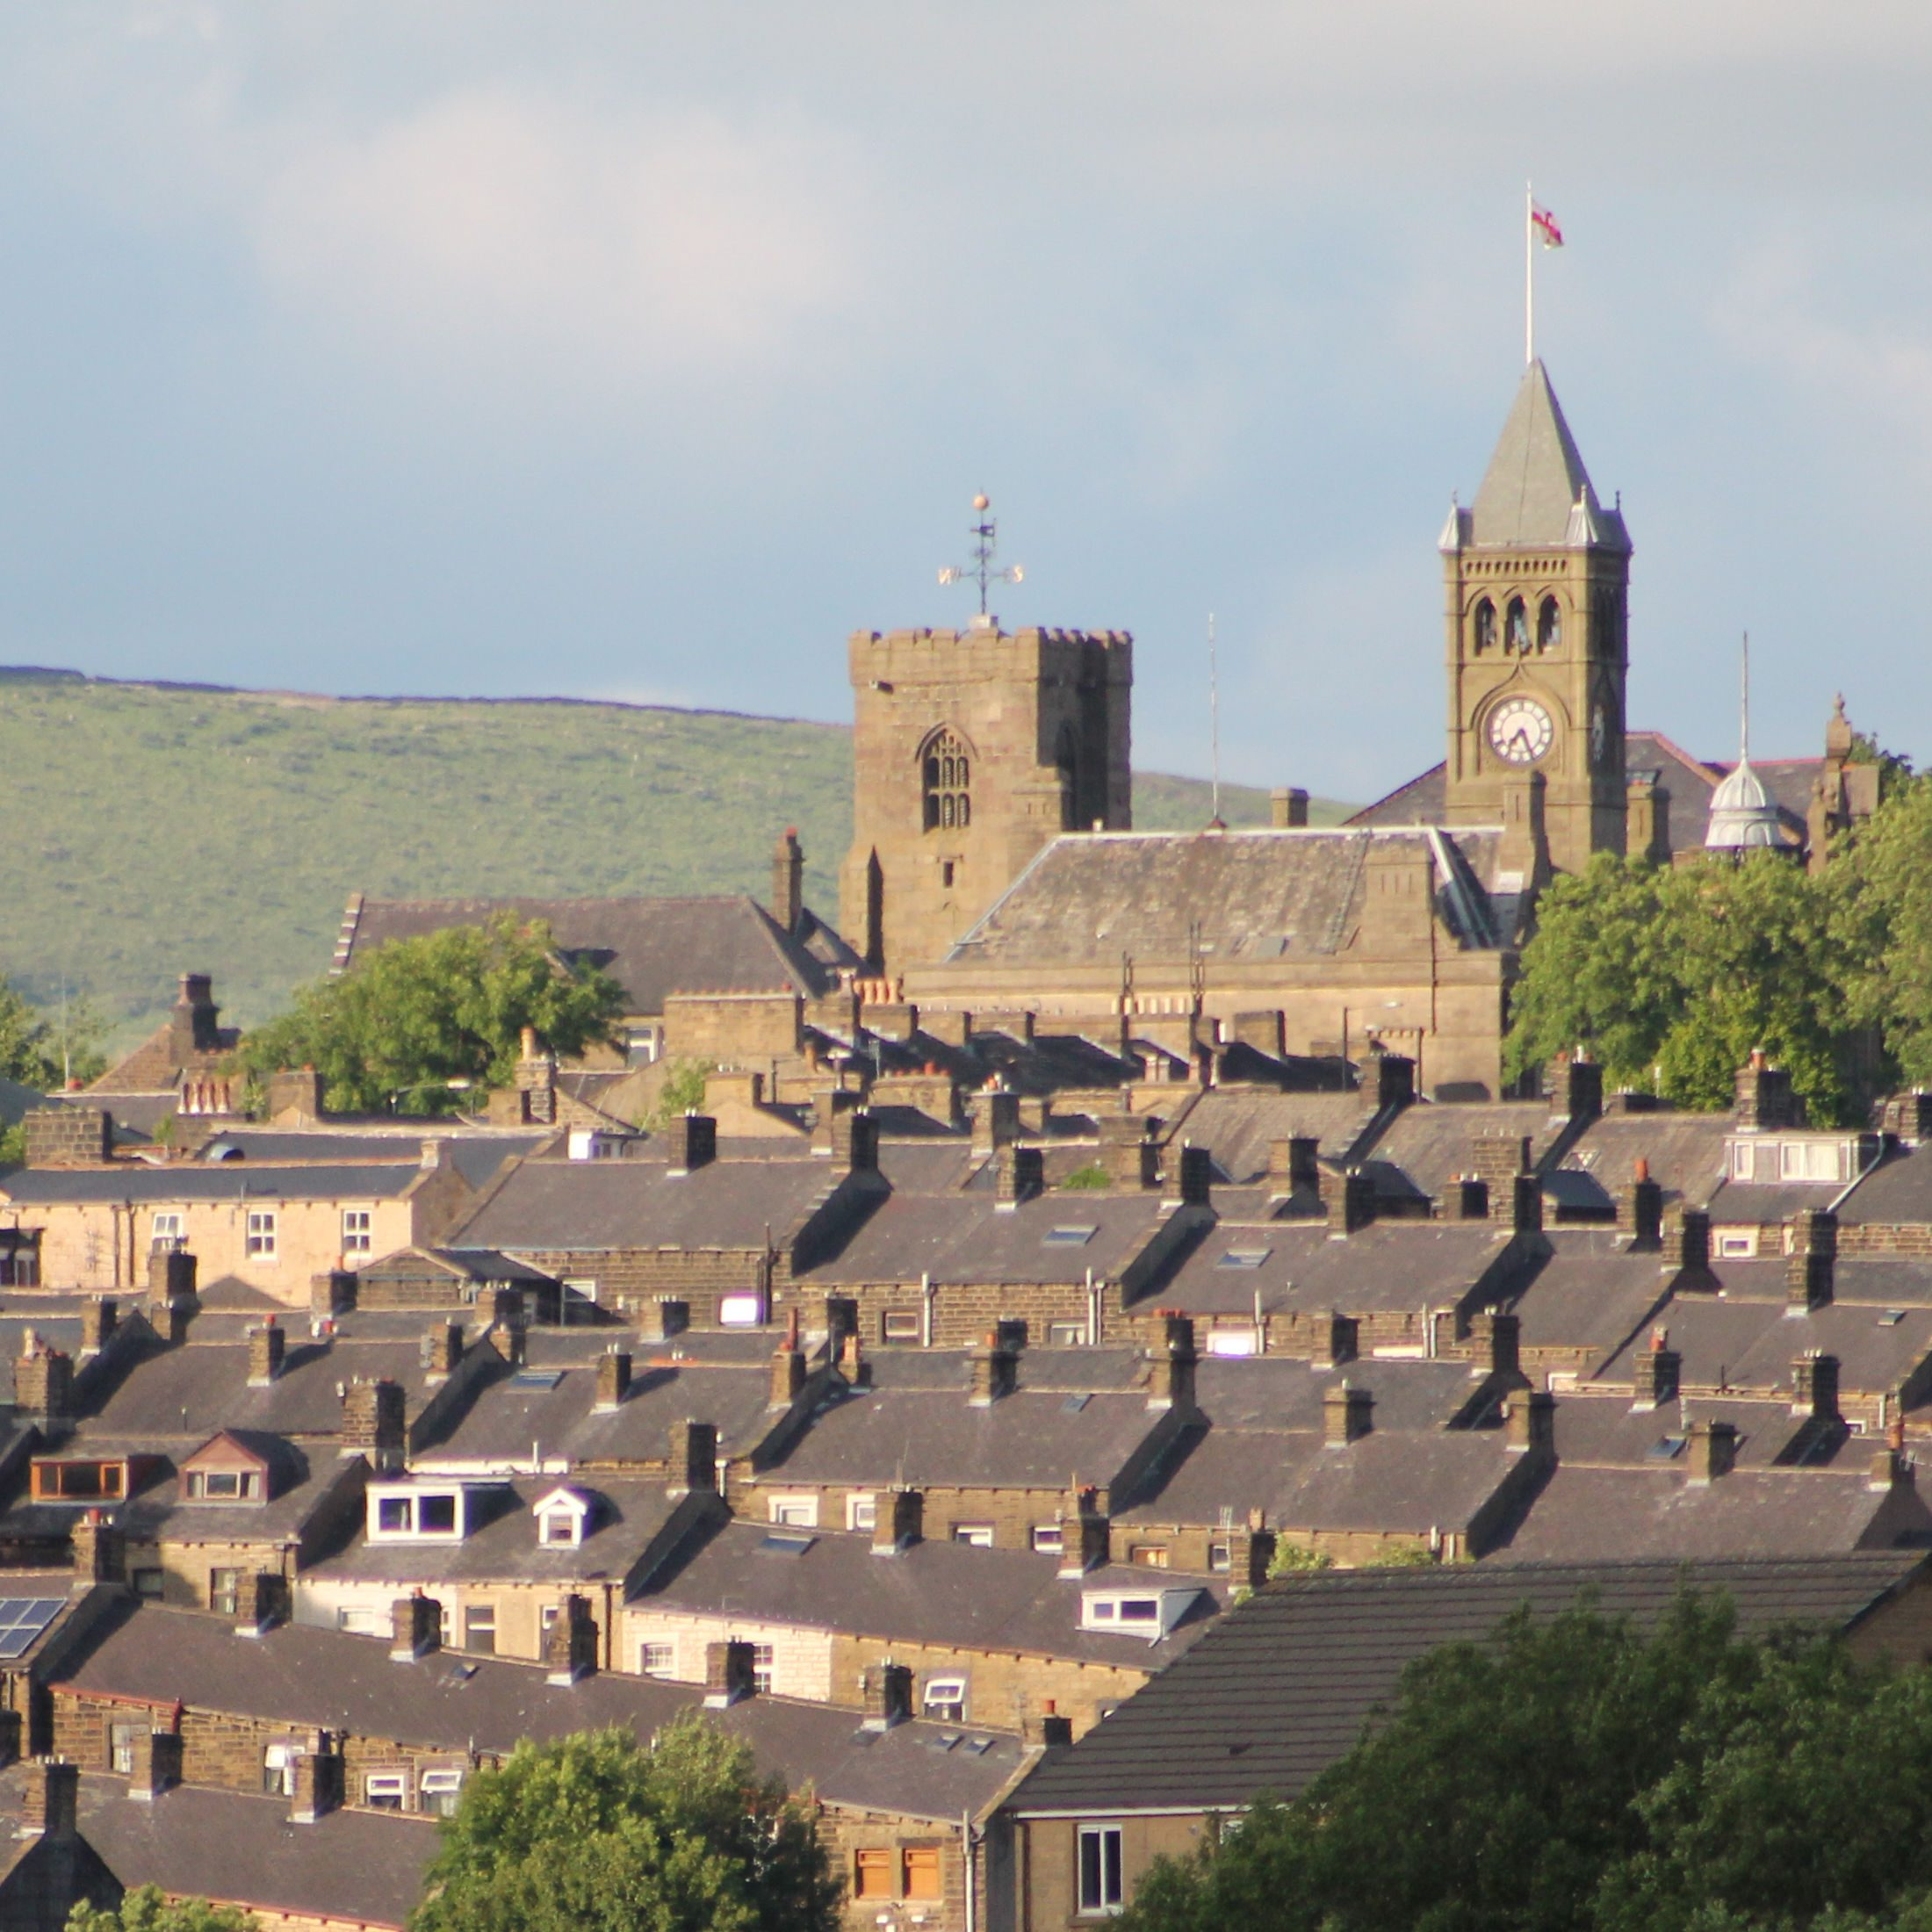 Rooftops of Colne